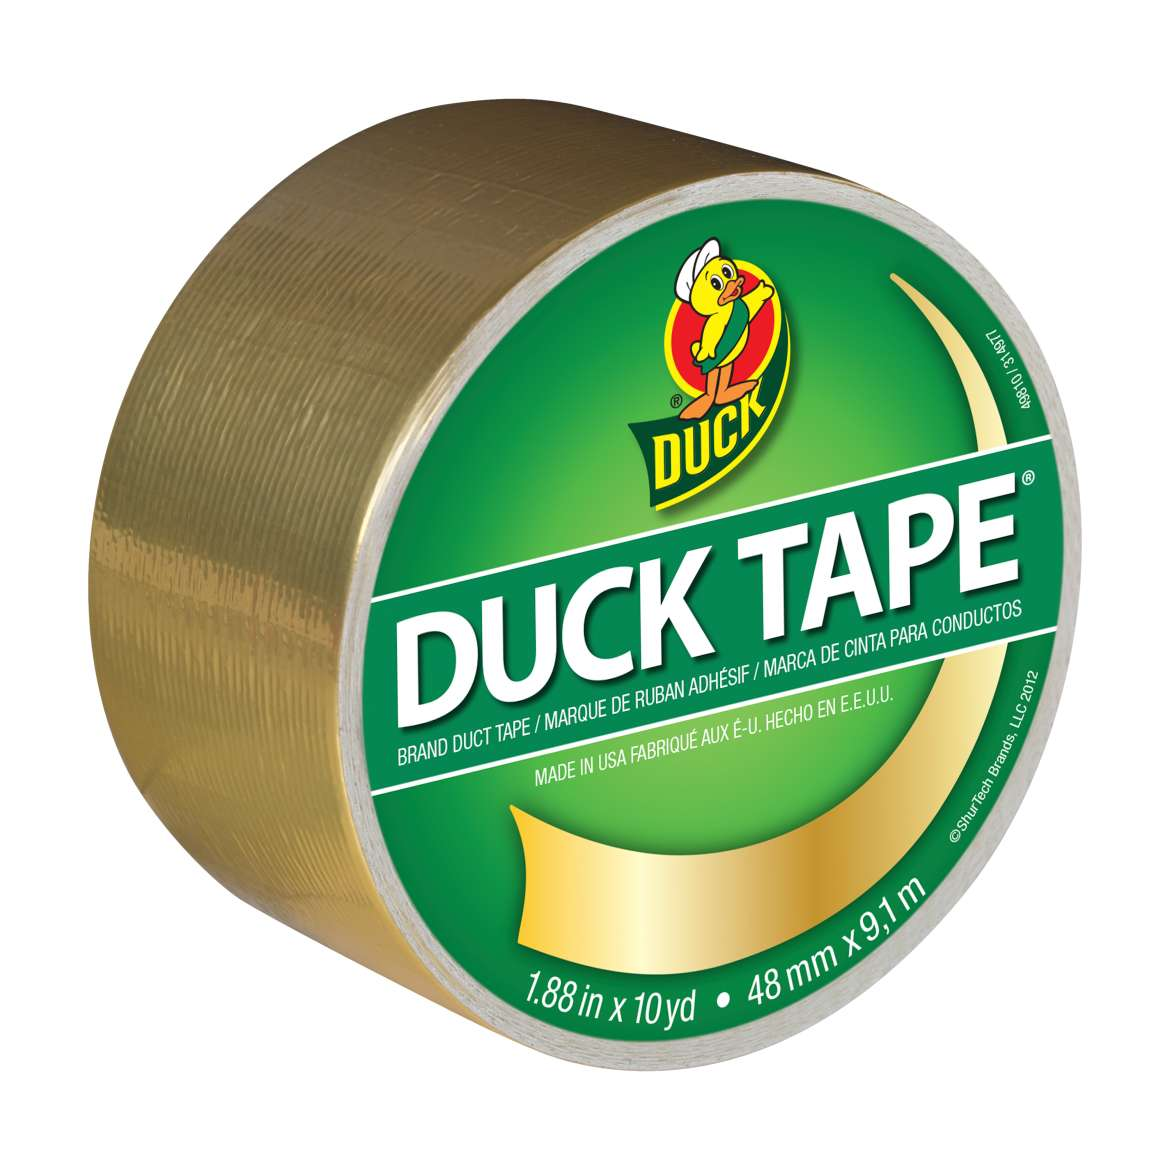 Duck Brand Duct Tape, 1.88 in. x 10 yds., Gold